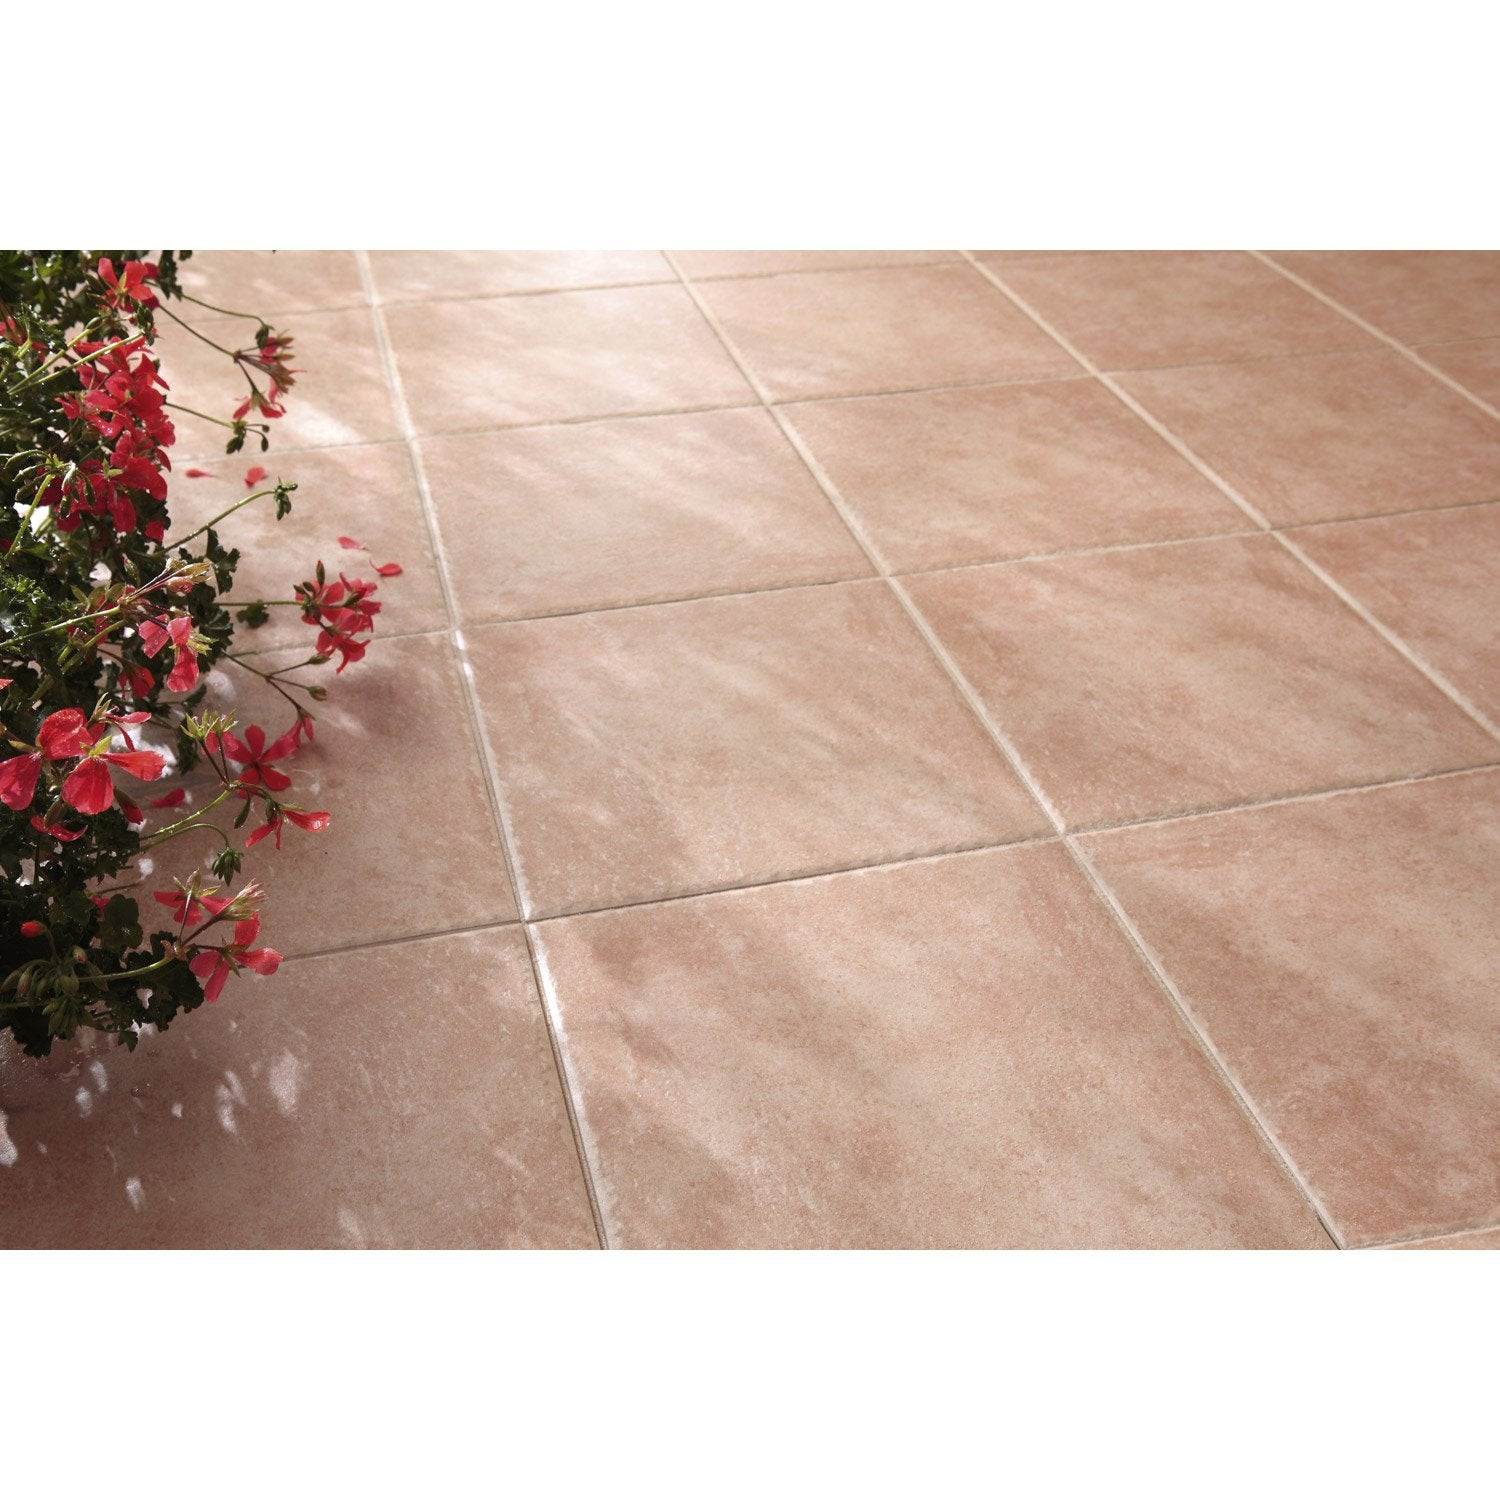 carrelage sol rose effet pierre michigan l34 x l34 cm